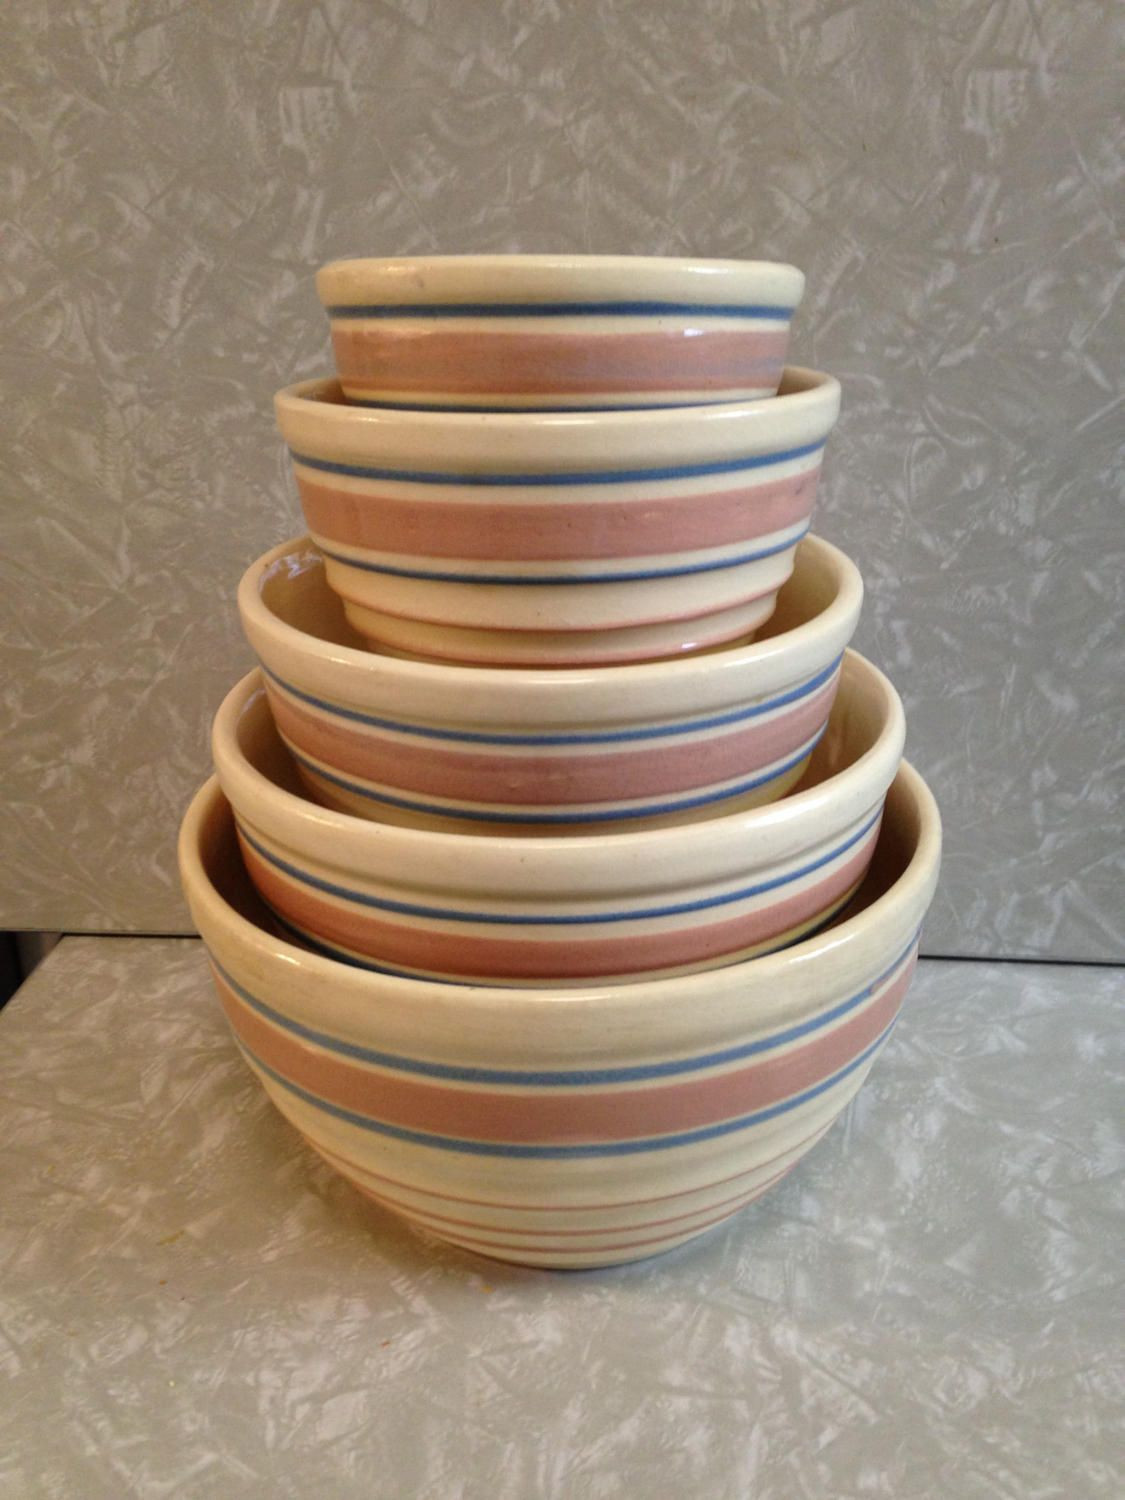 hull usa vase of 5 vintage beehive mixing nesting bowls pink and blue striped set of with 5 vintage beehive mixing nesting bowls pink and blue striped set of five hull pottery